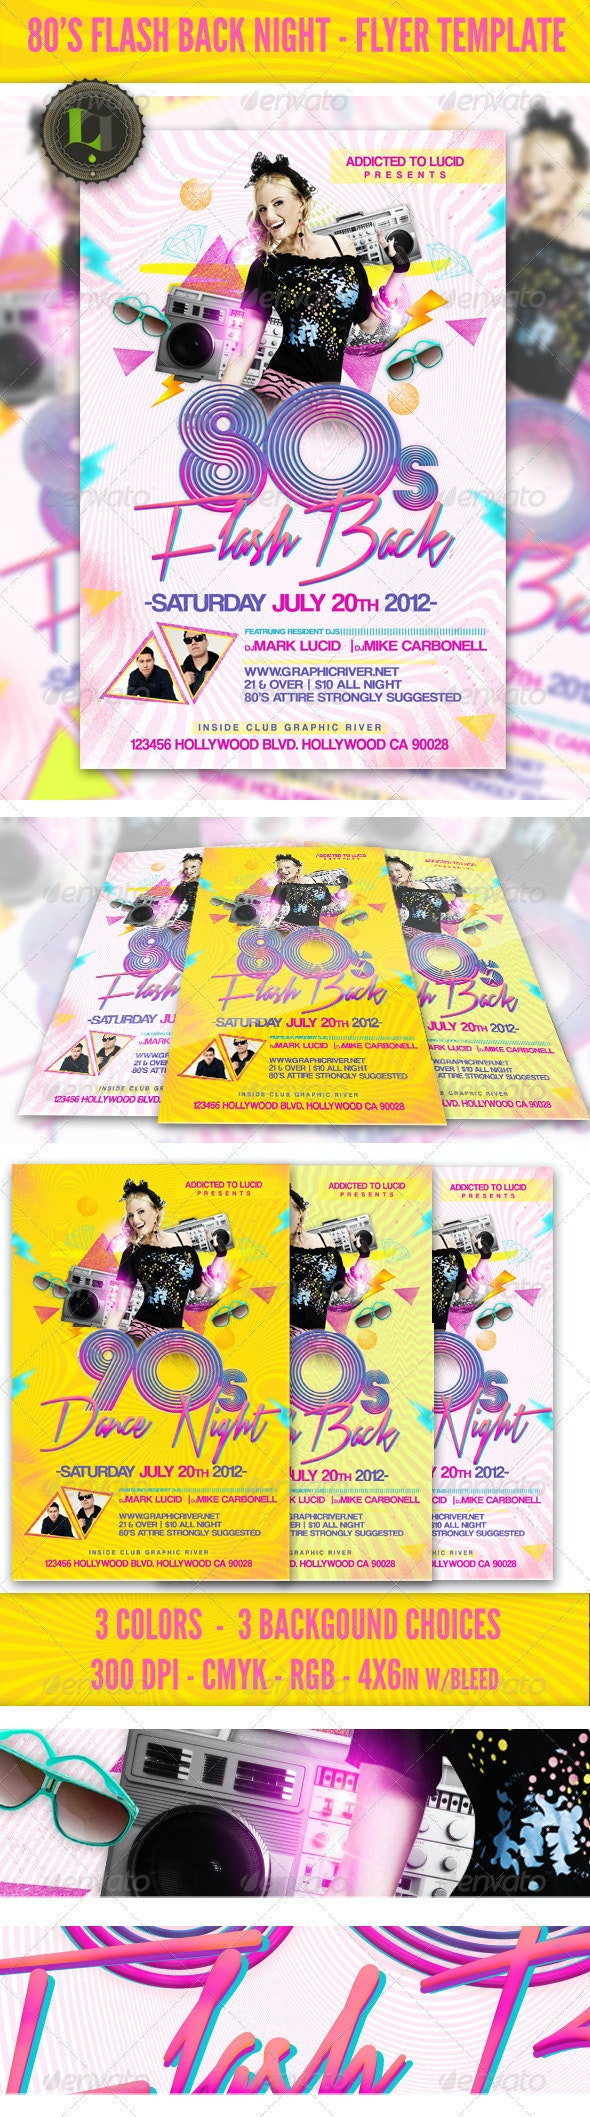 80's Flash Back Night - Flyer Template - Clubs & Parties Events